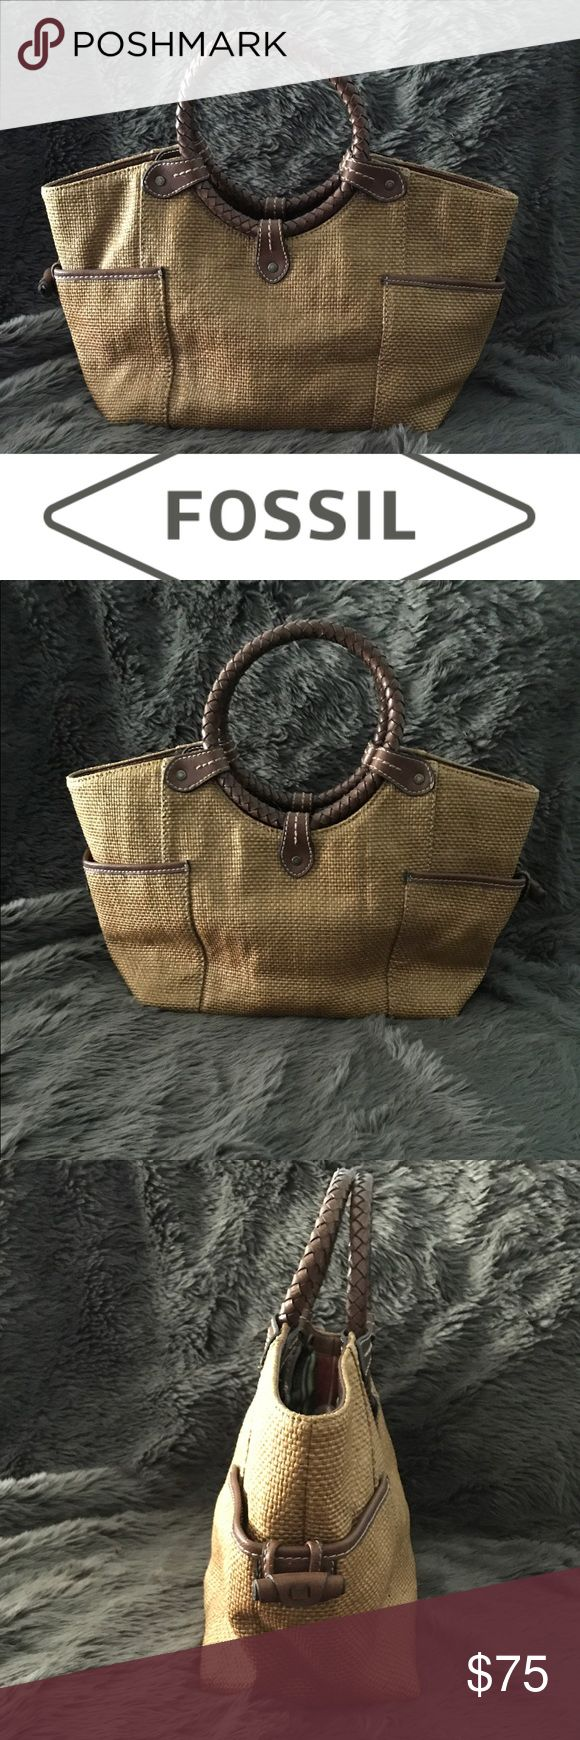 """Fossil Straw Tote Gorgeous EUC Fossil Straw and Leather Tote. Features 2 slip pockets on each exterior side.  Snap closure opens to reveal 2 large compartments divided by a large zip Top closure compartment.  In addition there is 1 interior zip pocket and 2 slip pockets, on adjacent sides.  Approximate size 15""""L x 5""""W x 9""""H with 5.5"""" circular hand hold. Fossil Bags Totes"""